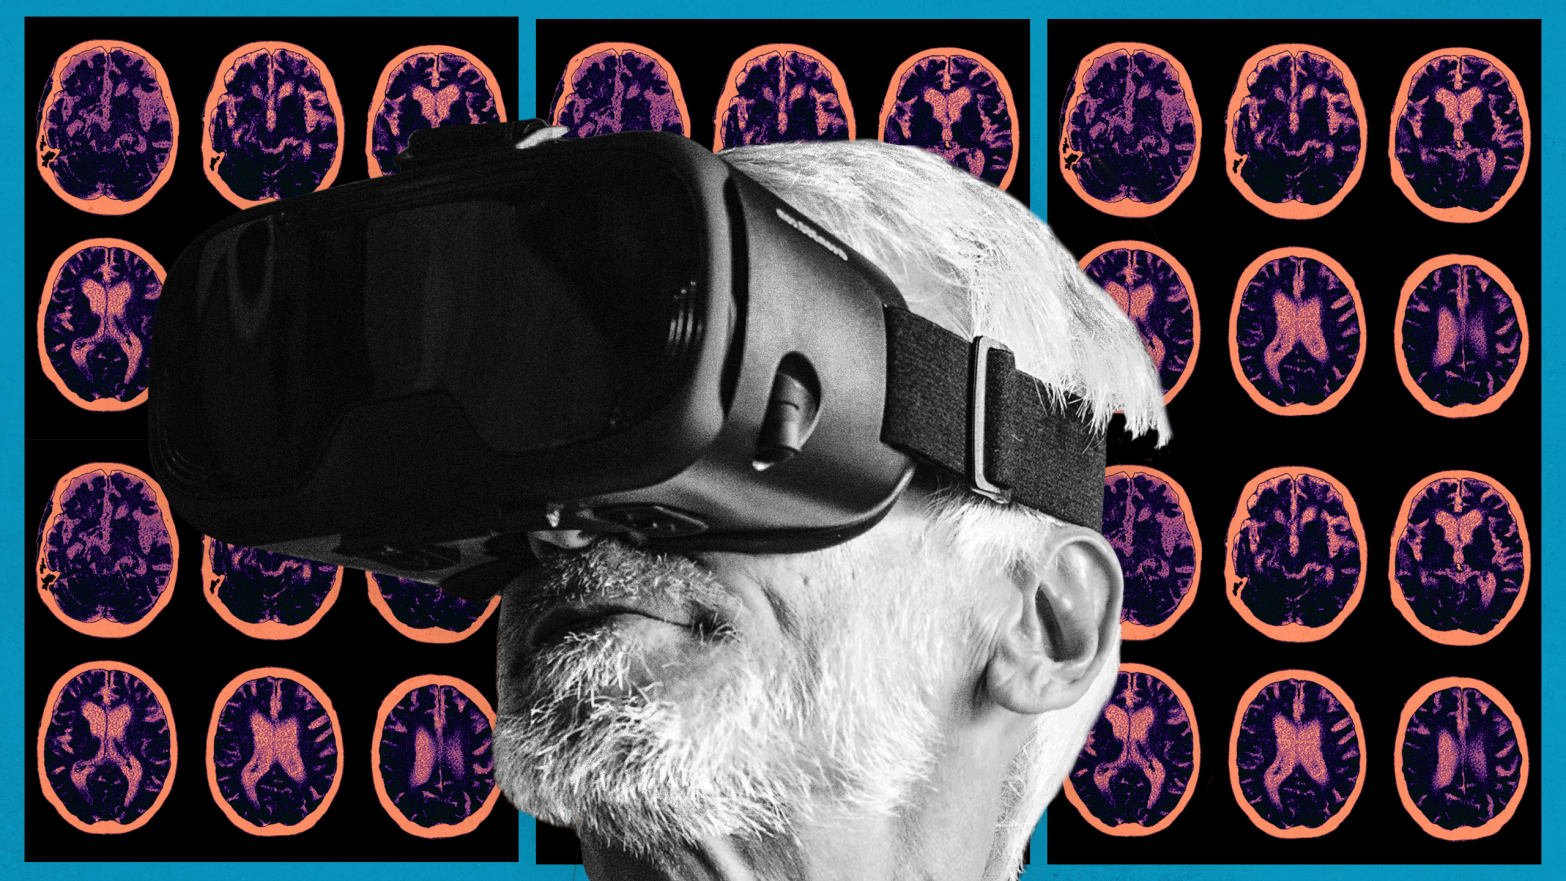 image of elderly person wearing virtual reality vr headset with brain scans behind in pink alzheimer scan virtue uk rehman gorman